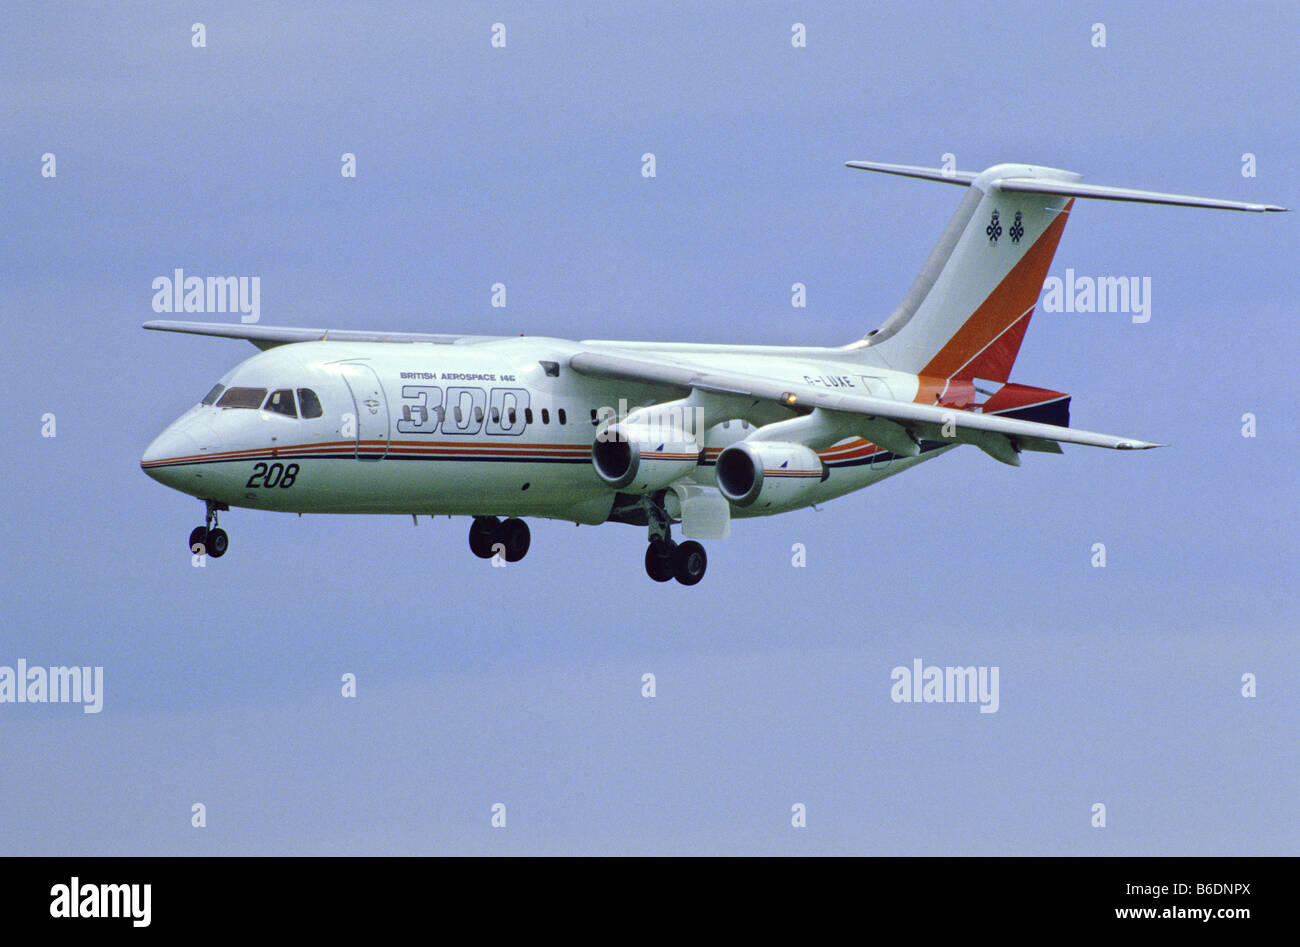 British Aerospace BAe-146-300 Airliner Approach to Land - Stock Image